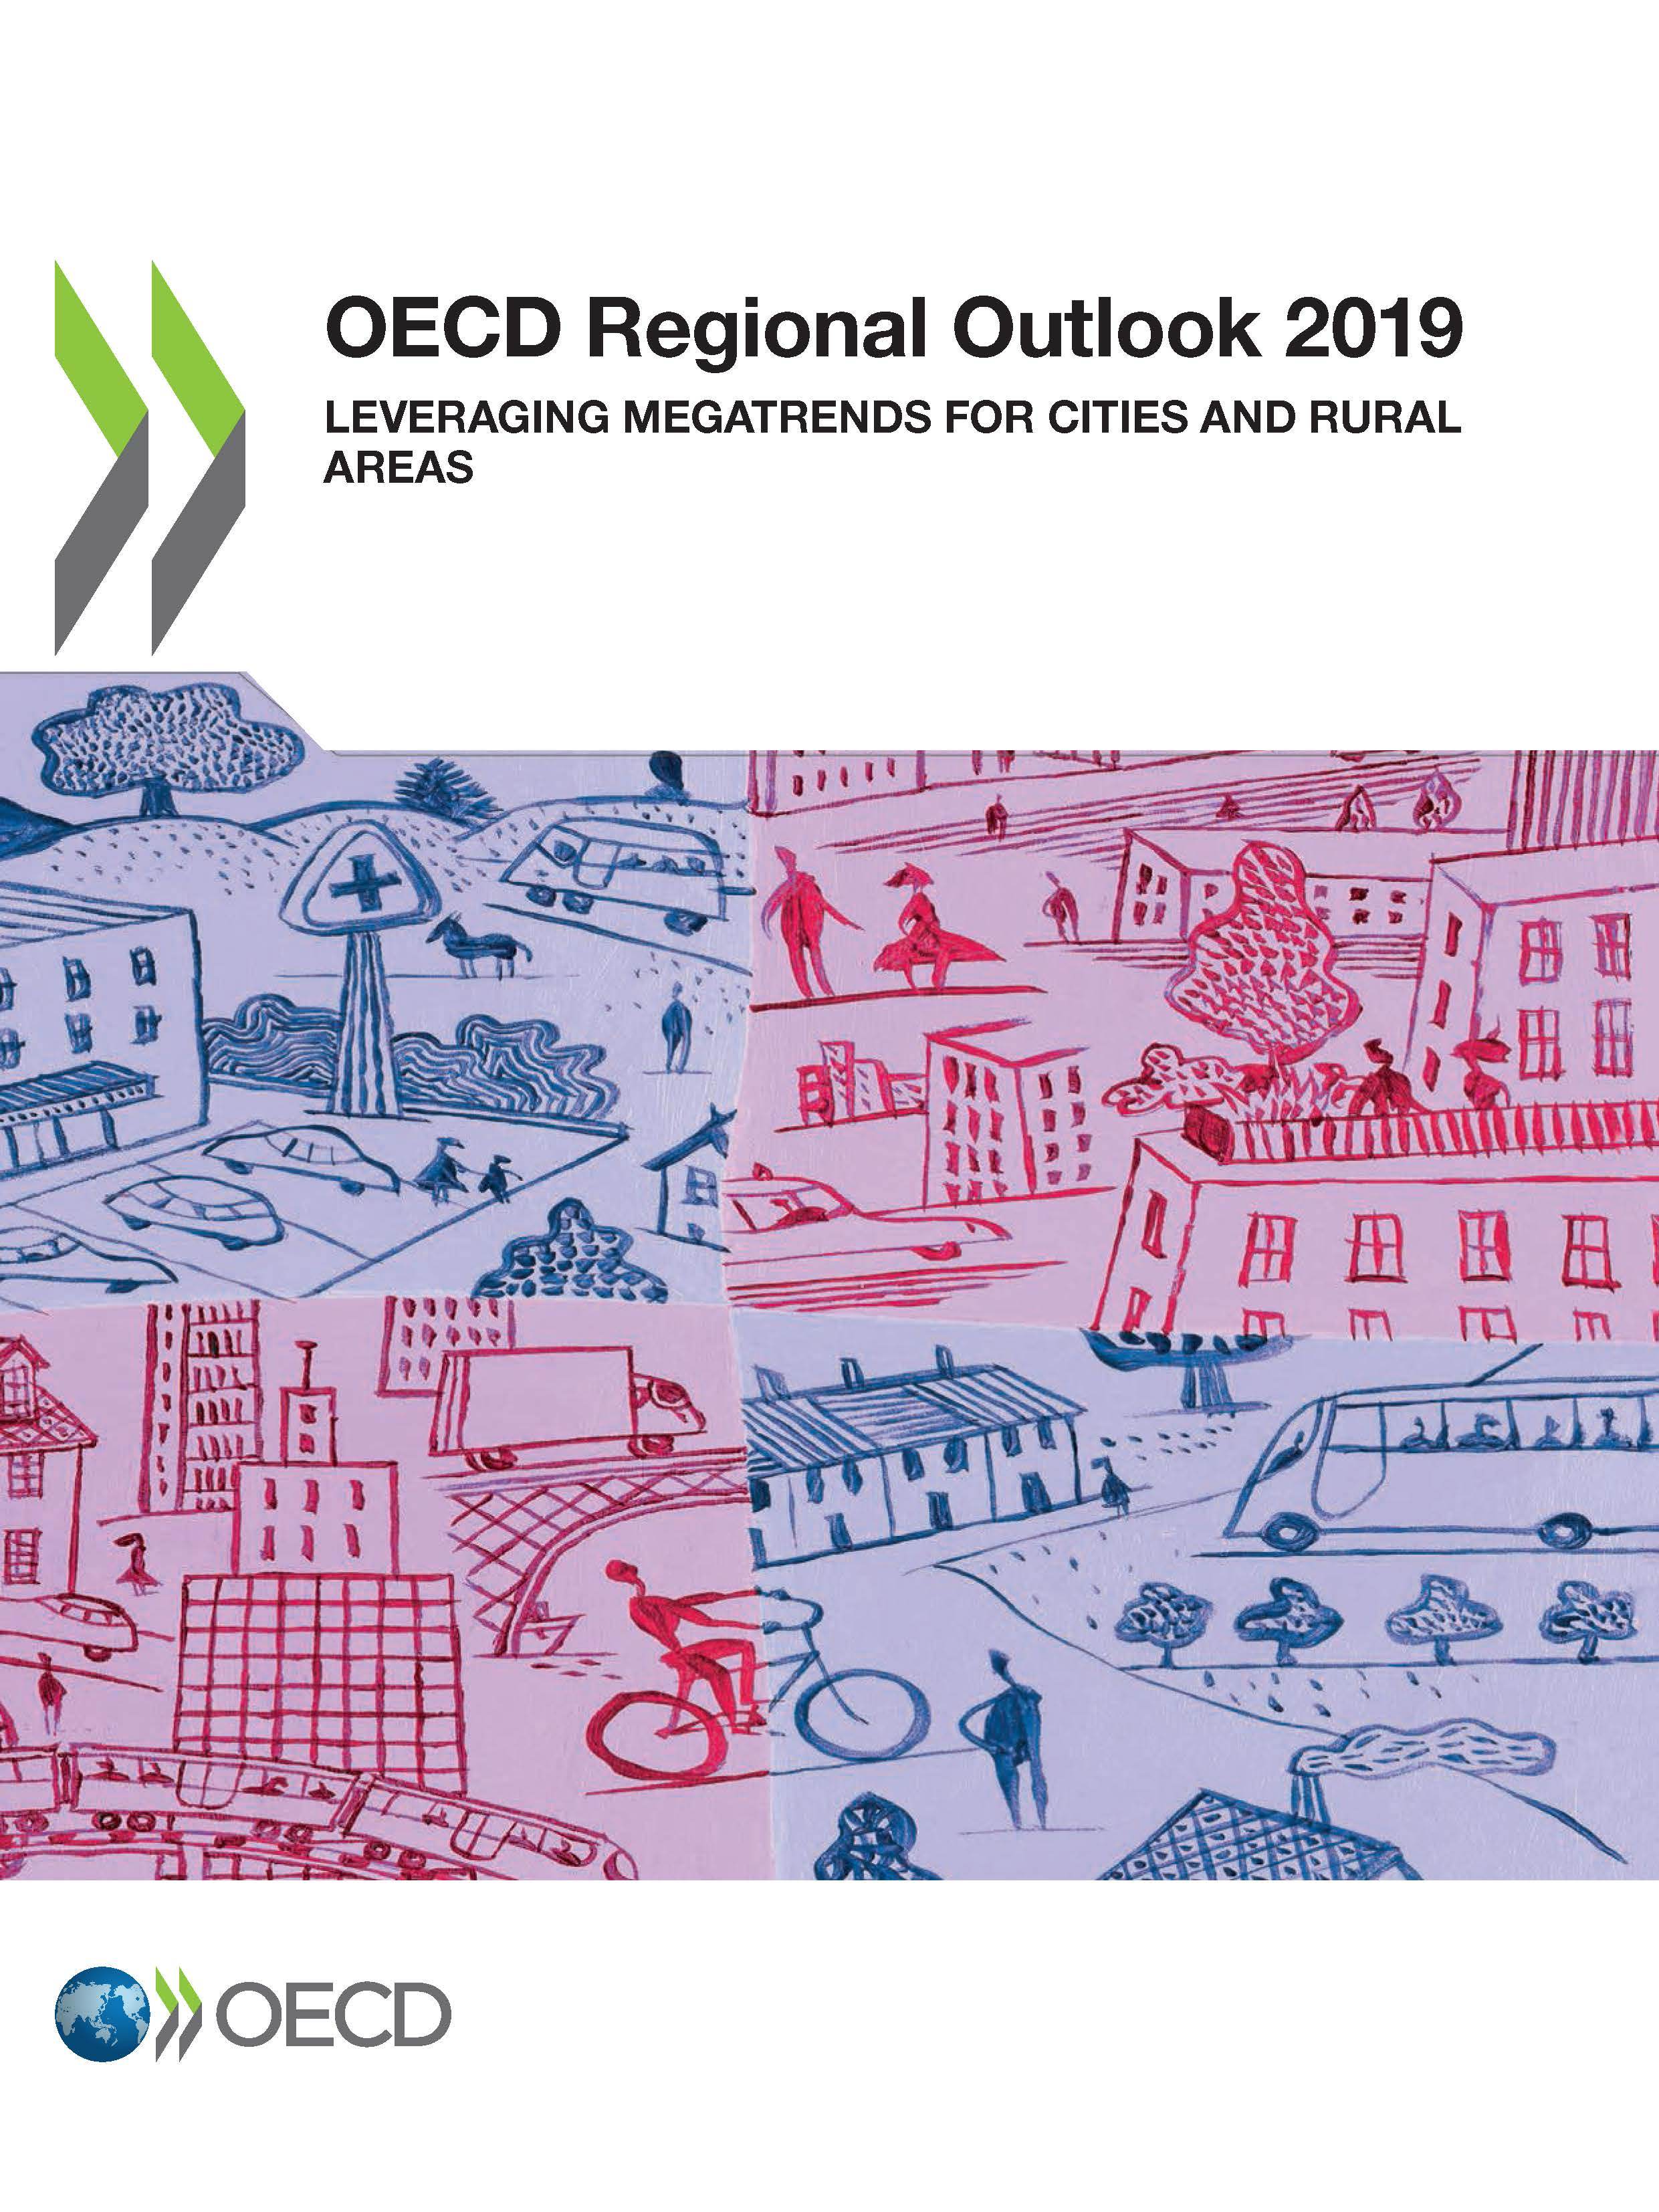 OECD | OECD Regional Outlook 2019: Leveraging Megatrends for Cities and Rural Areas | OECD Publishing, Paris |2019